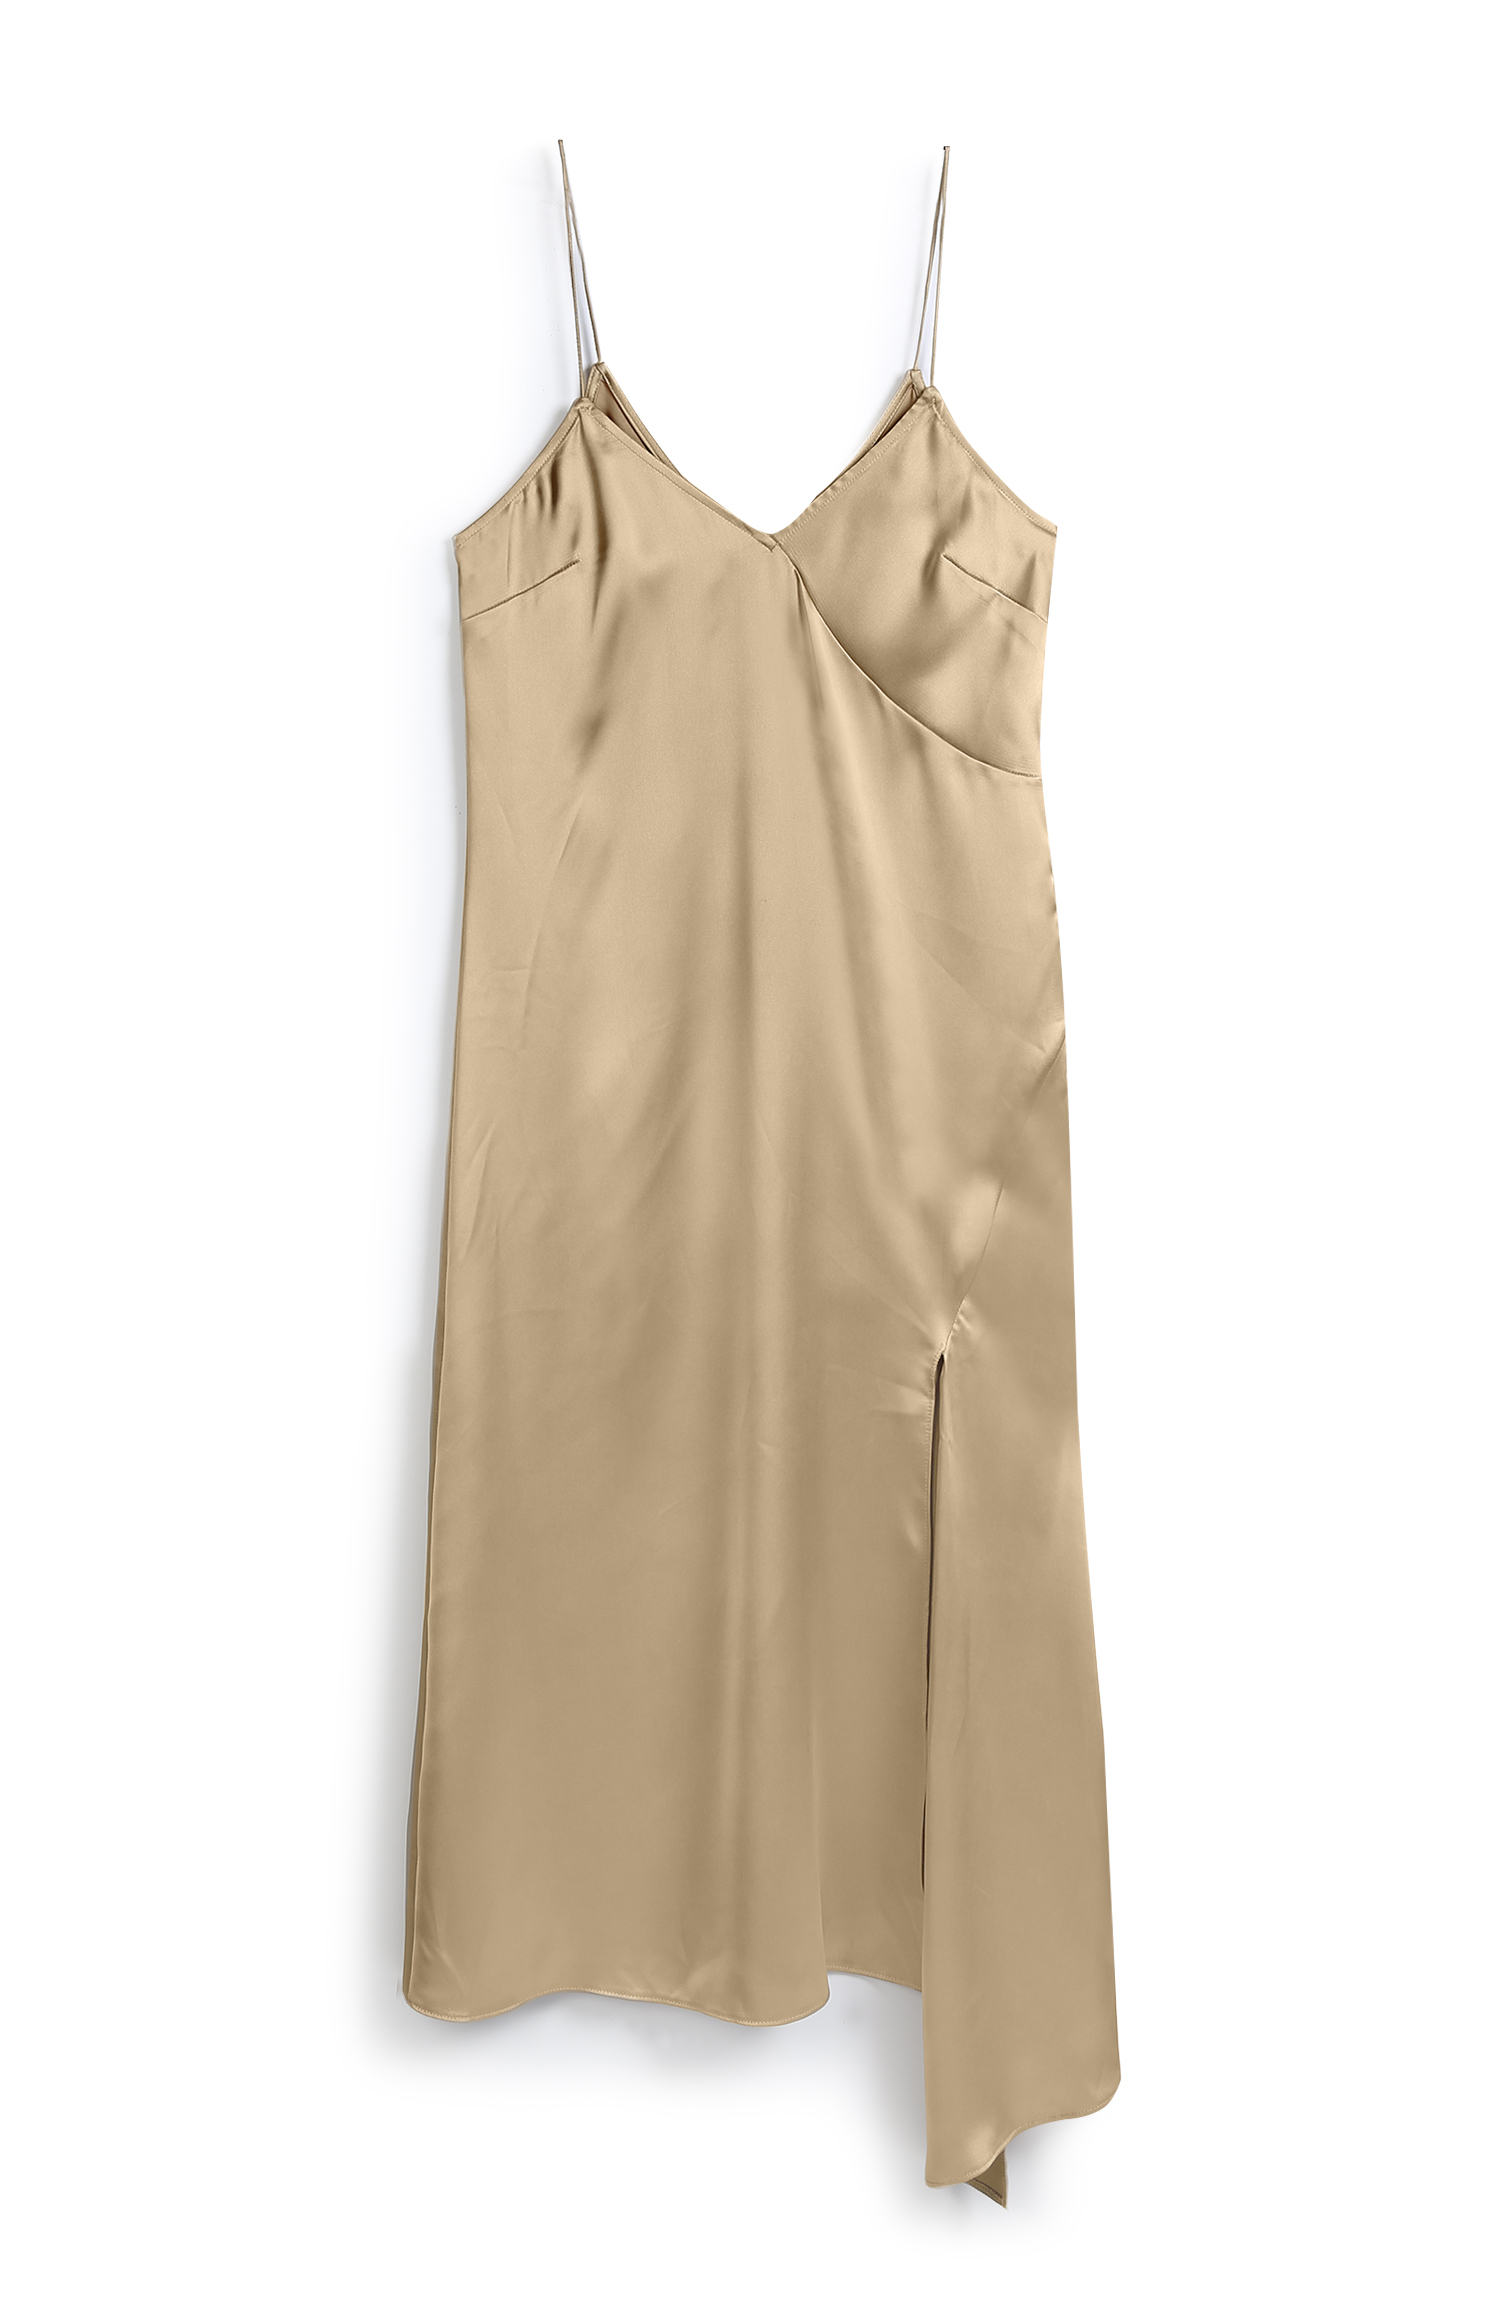 This €20 dress from Penneys' new summer range is actually perfect for a Christmas party